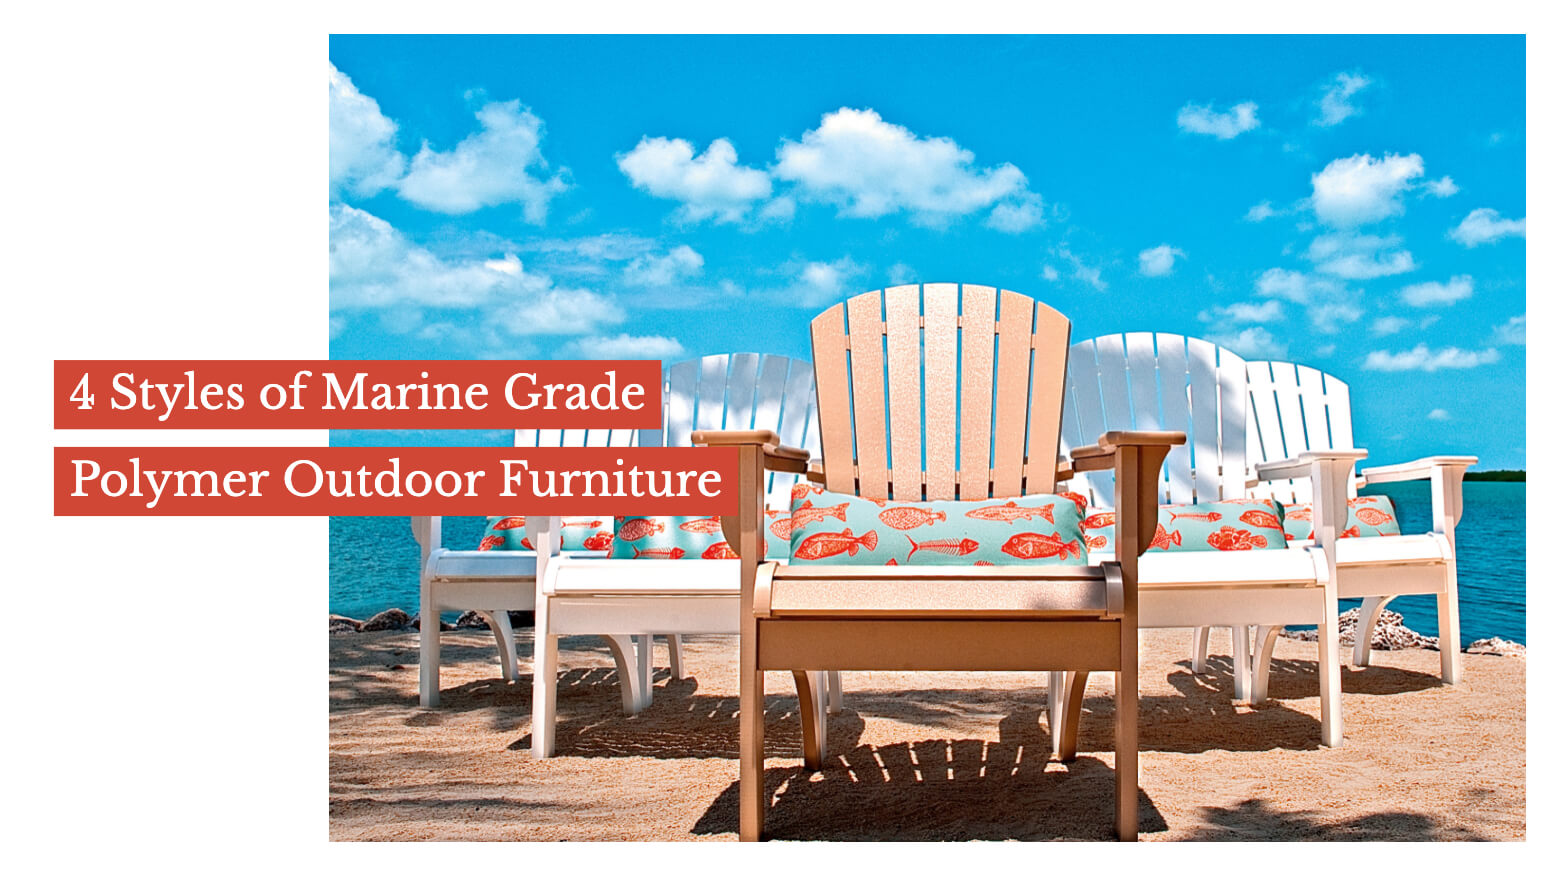 4 Styles of Marine Grade Polymer Outdoor Furniture